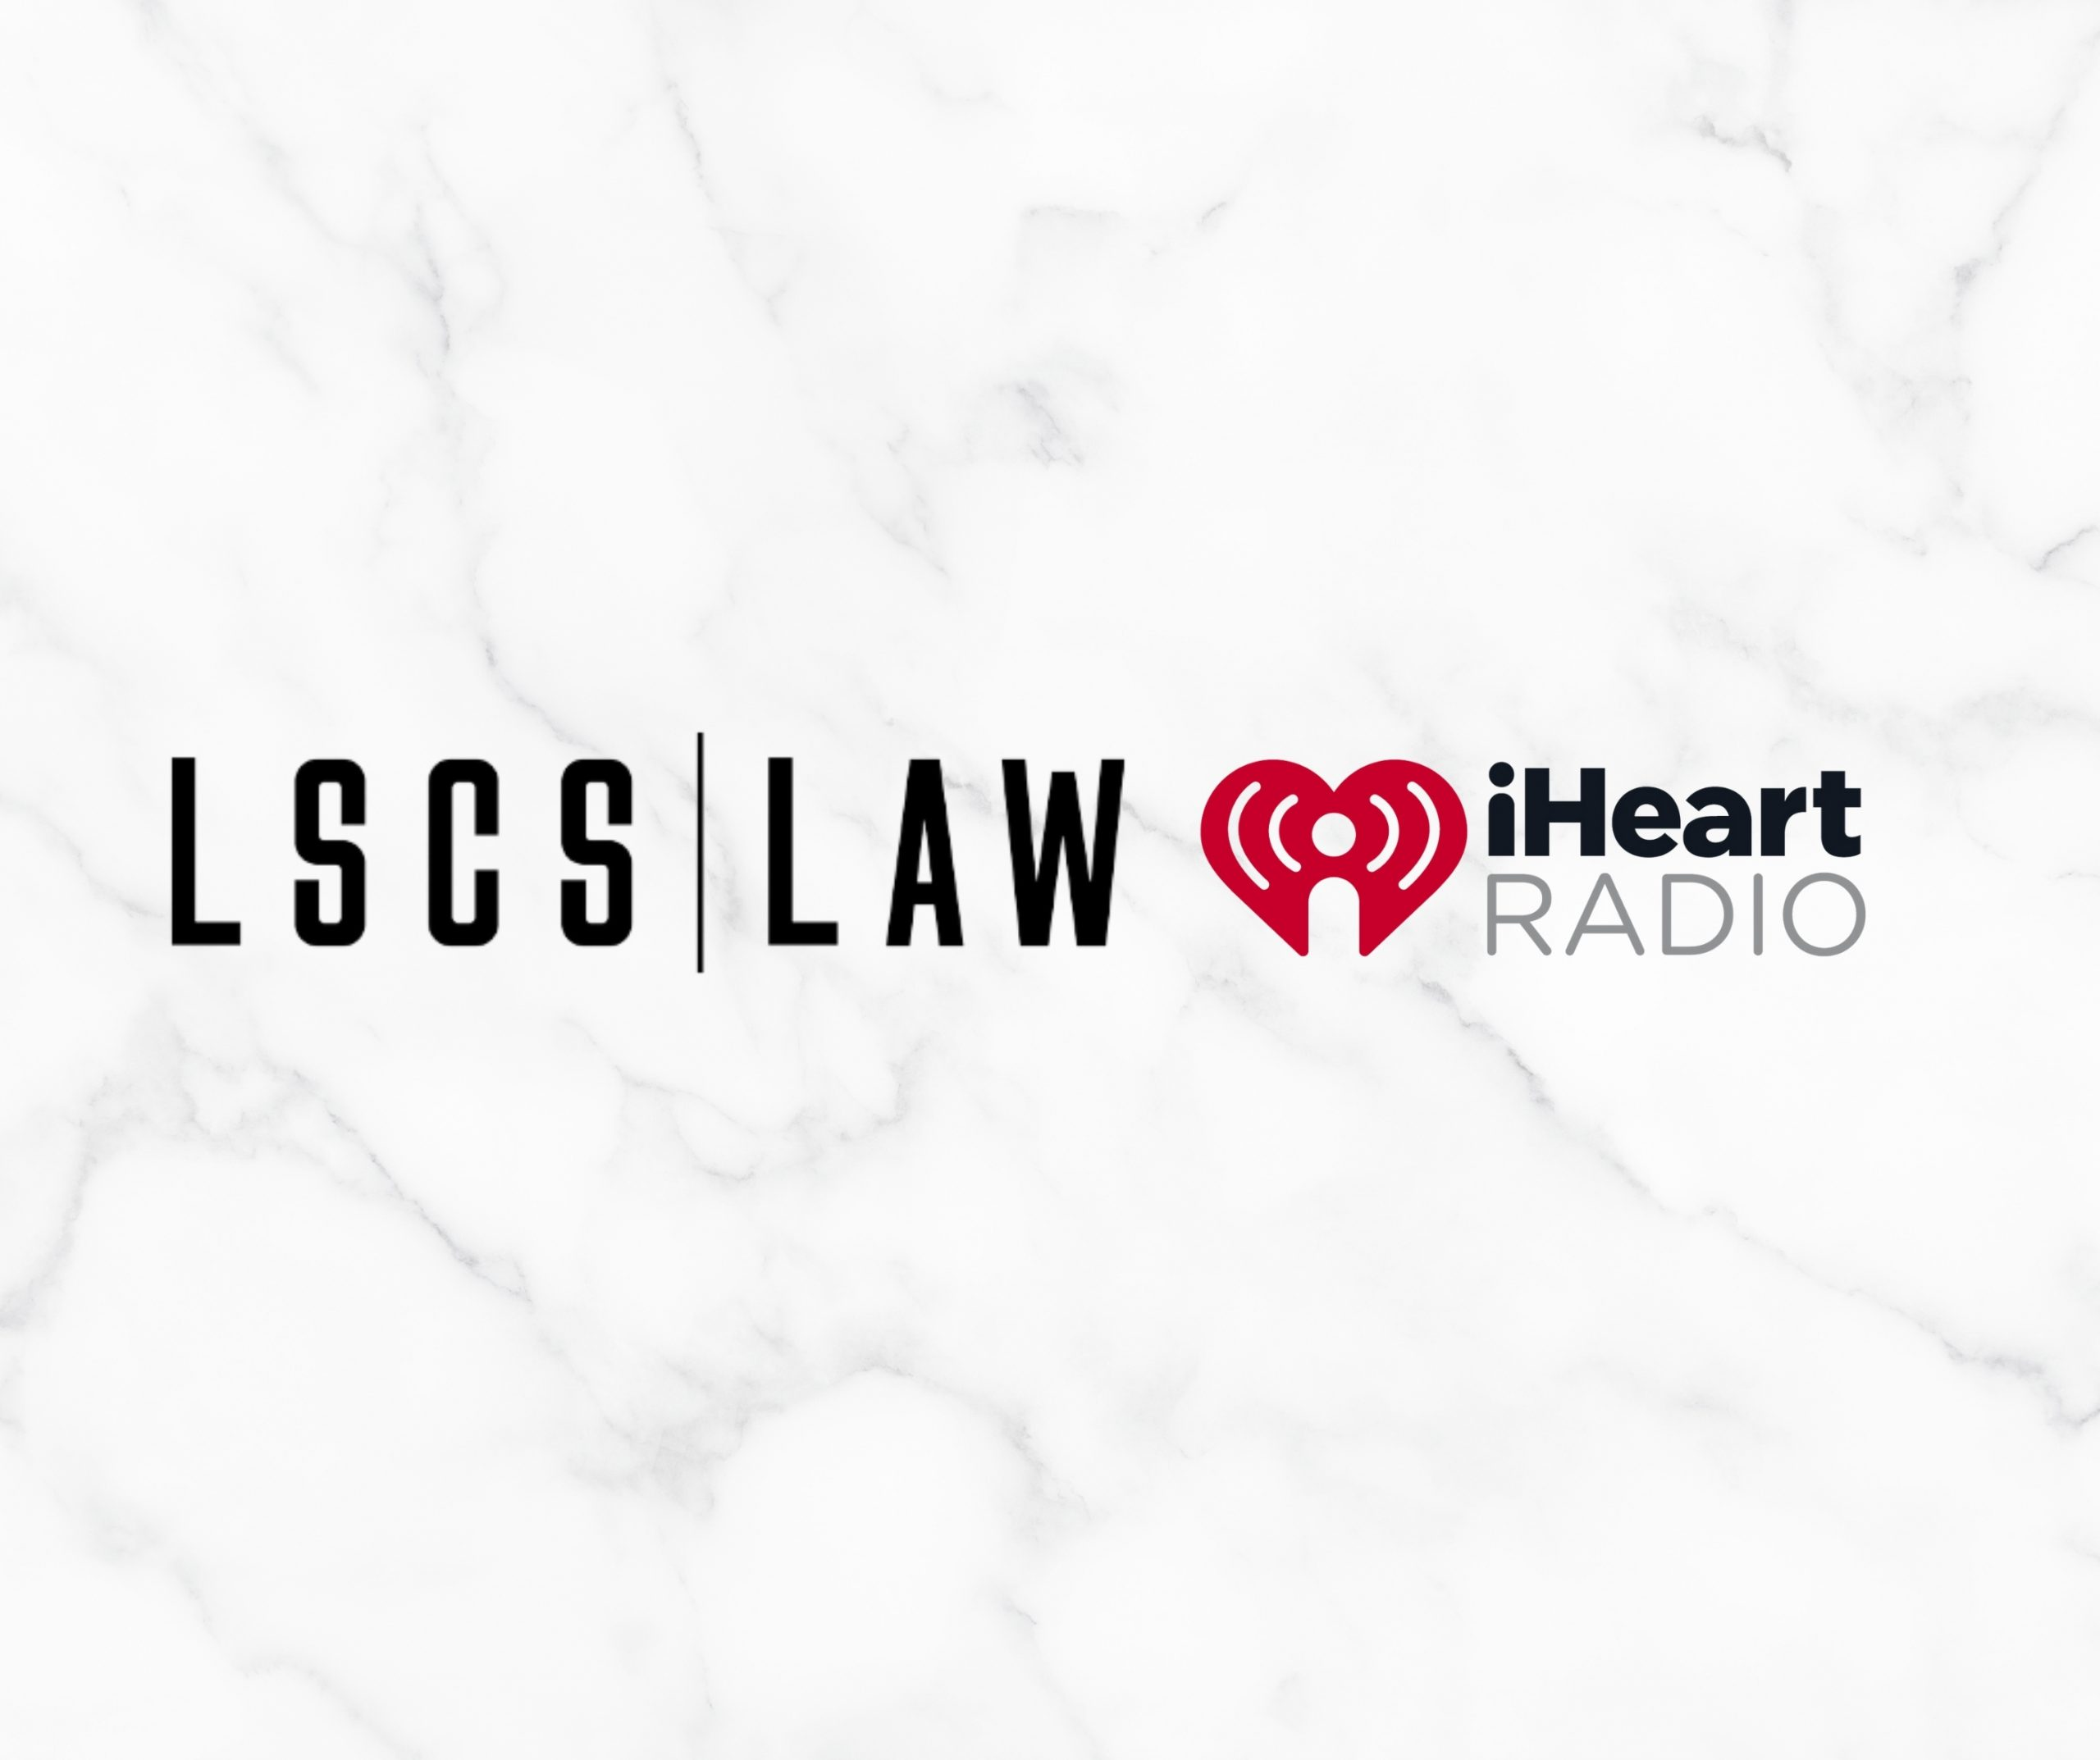 LSCS LAW iHEART RADIO